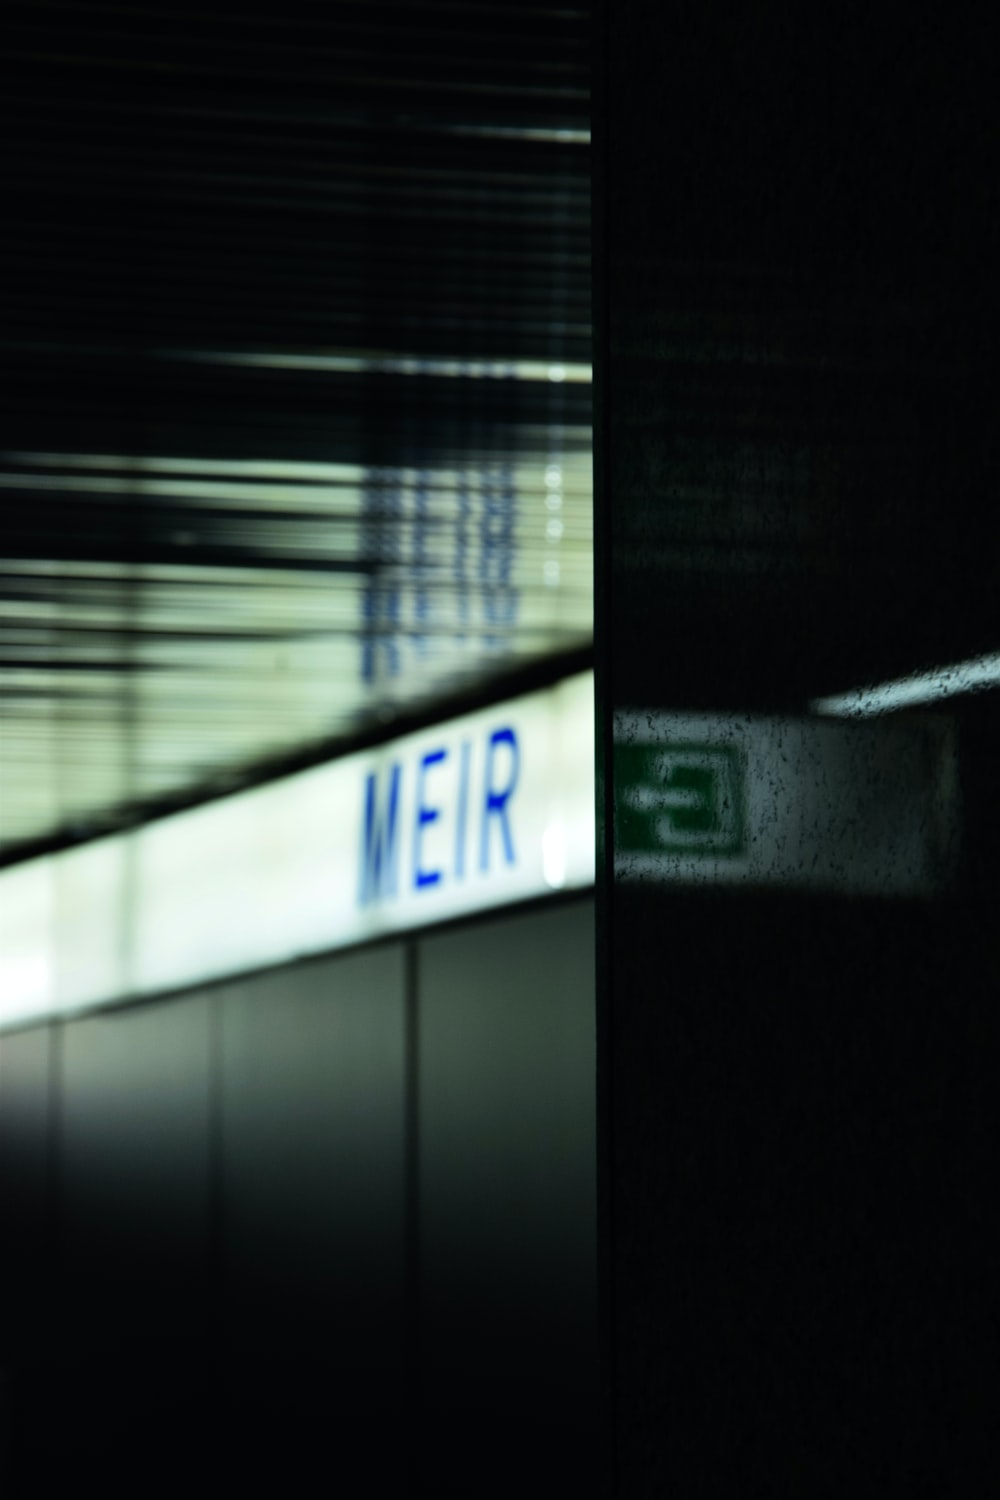 MEIR sign with lights